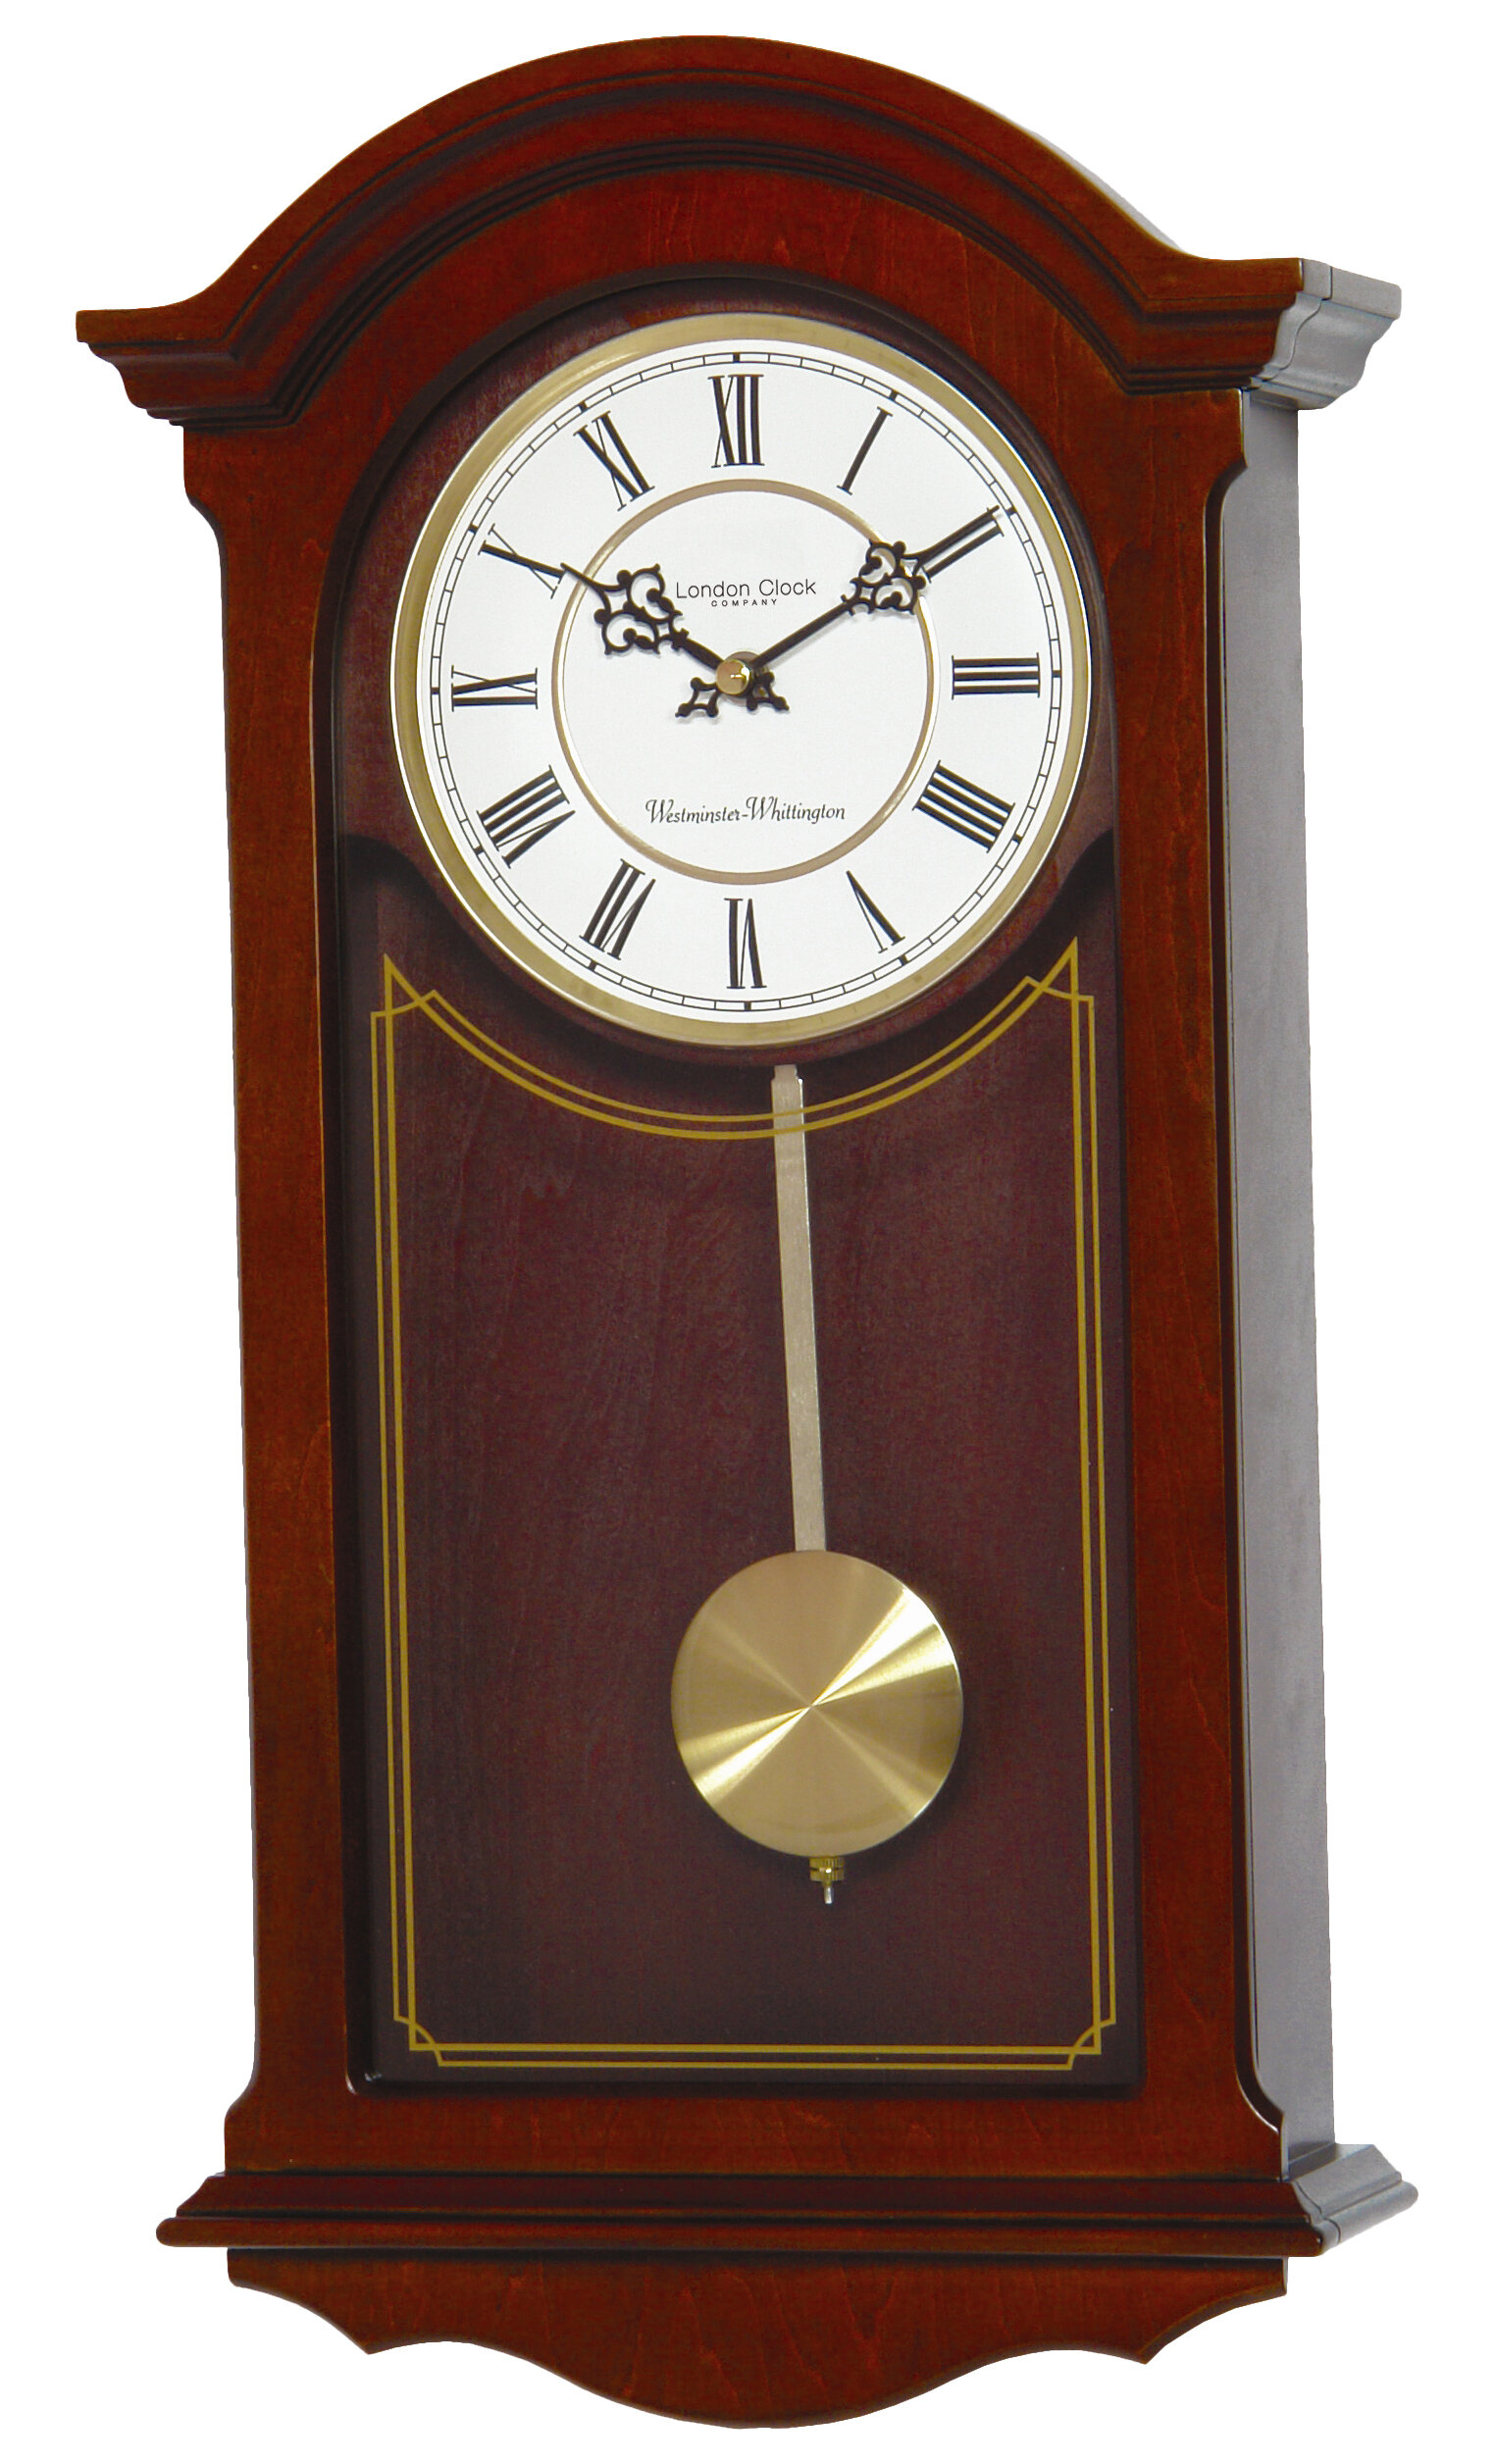 London Clock Company Walnut Wood Pendulum Wall Clock U0026 Reviews |  Wayfair.co.uk